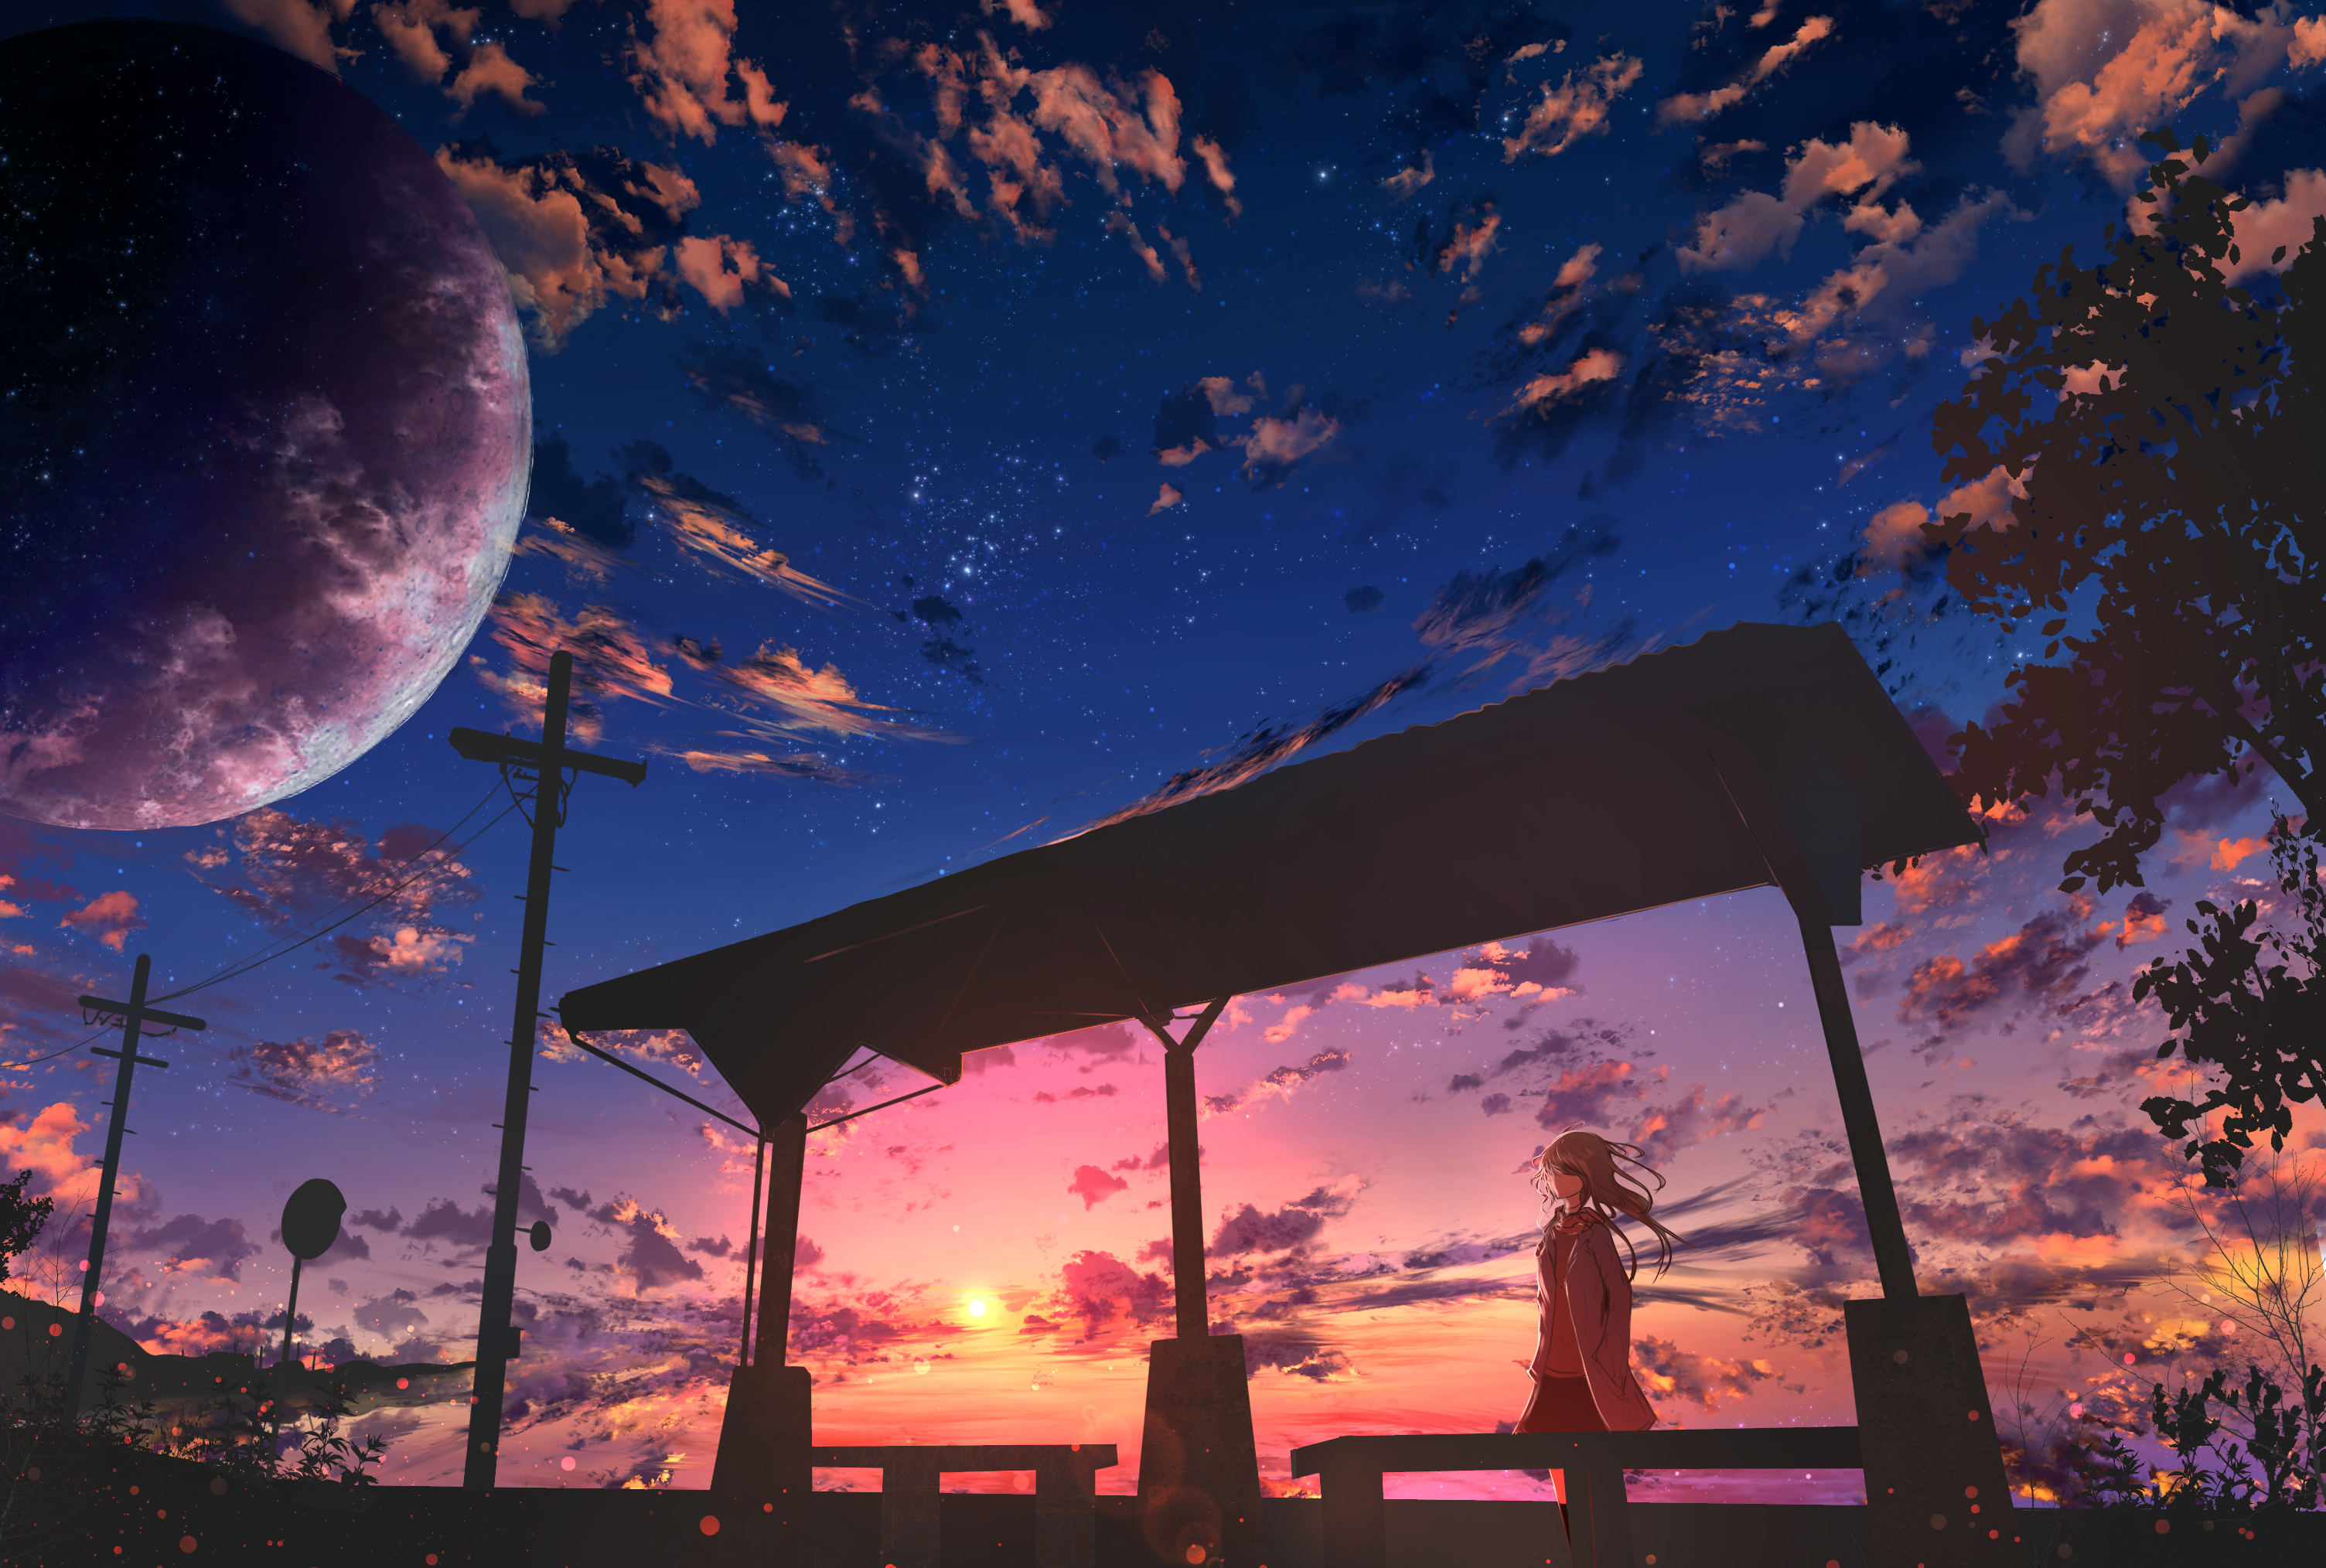 124190 download wallpaper Anime, Twilight, Clouds, Dusk, Girl screensavers and pictures for free